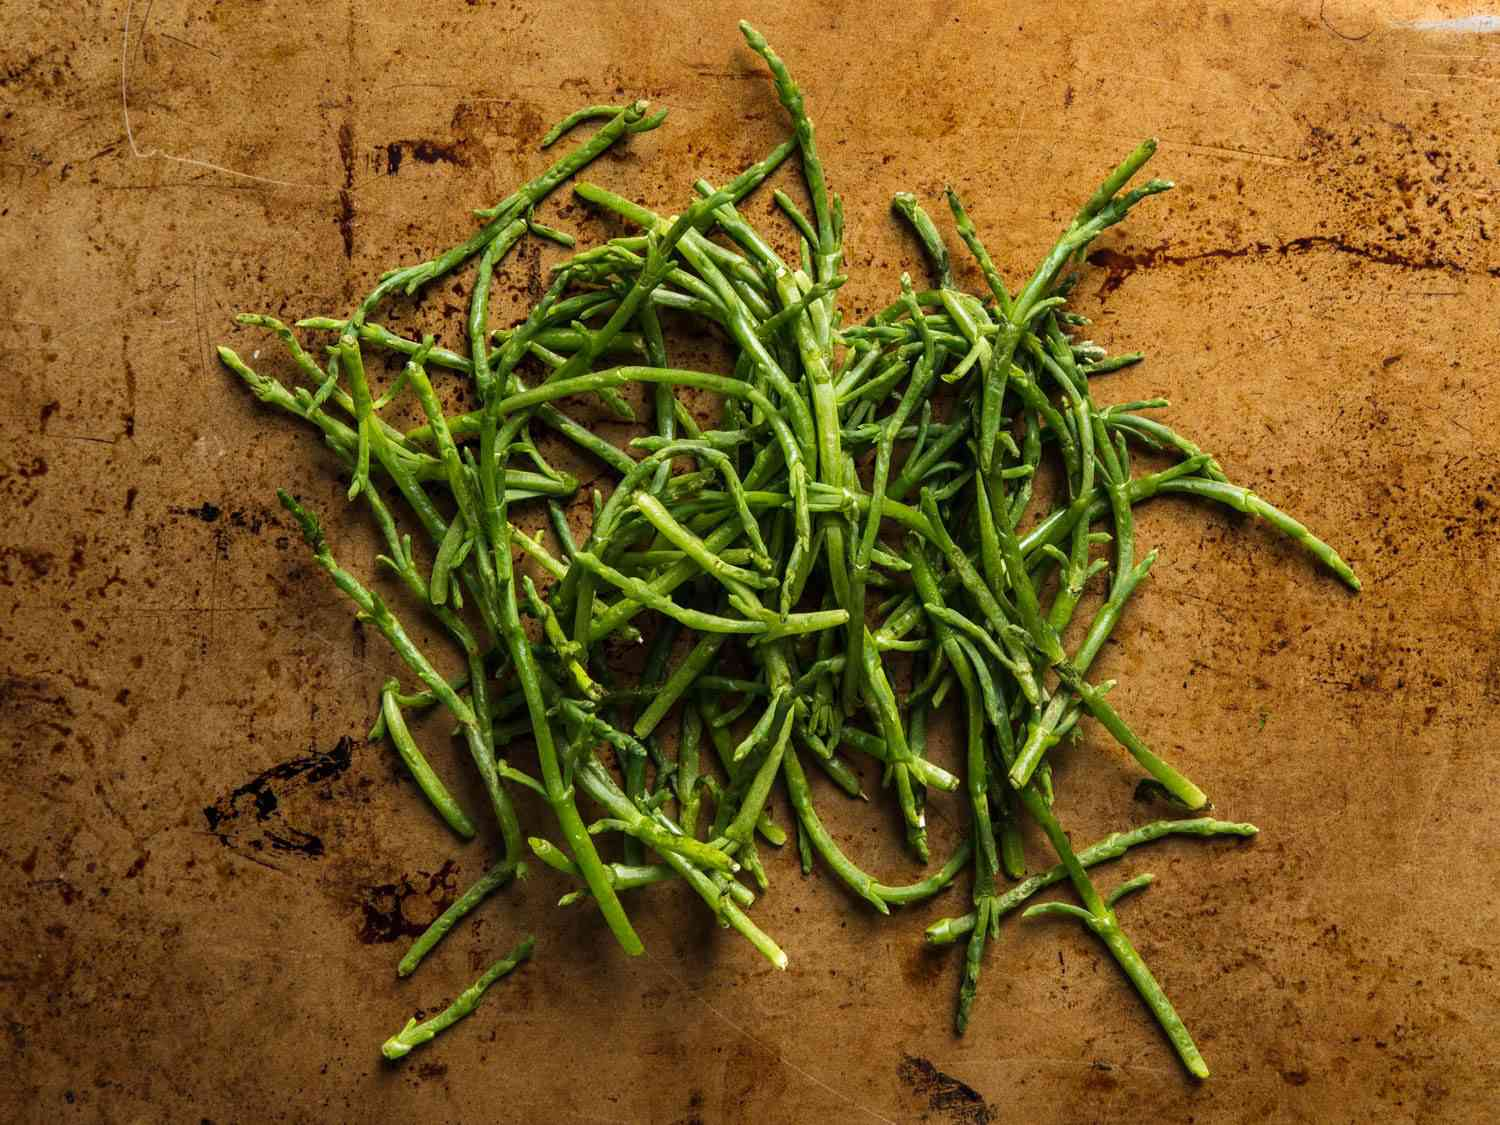 A pile of green sea beans (a.k.a. samphire or Salicornia), viewed from above